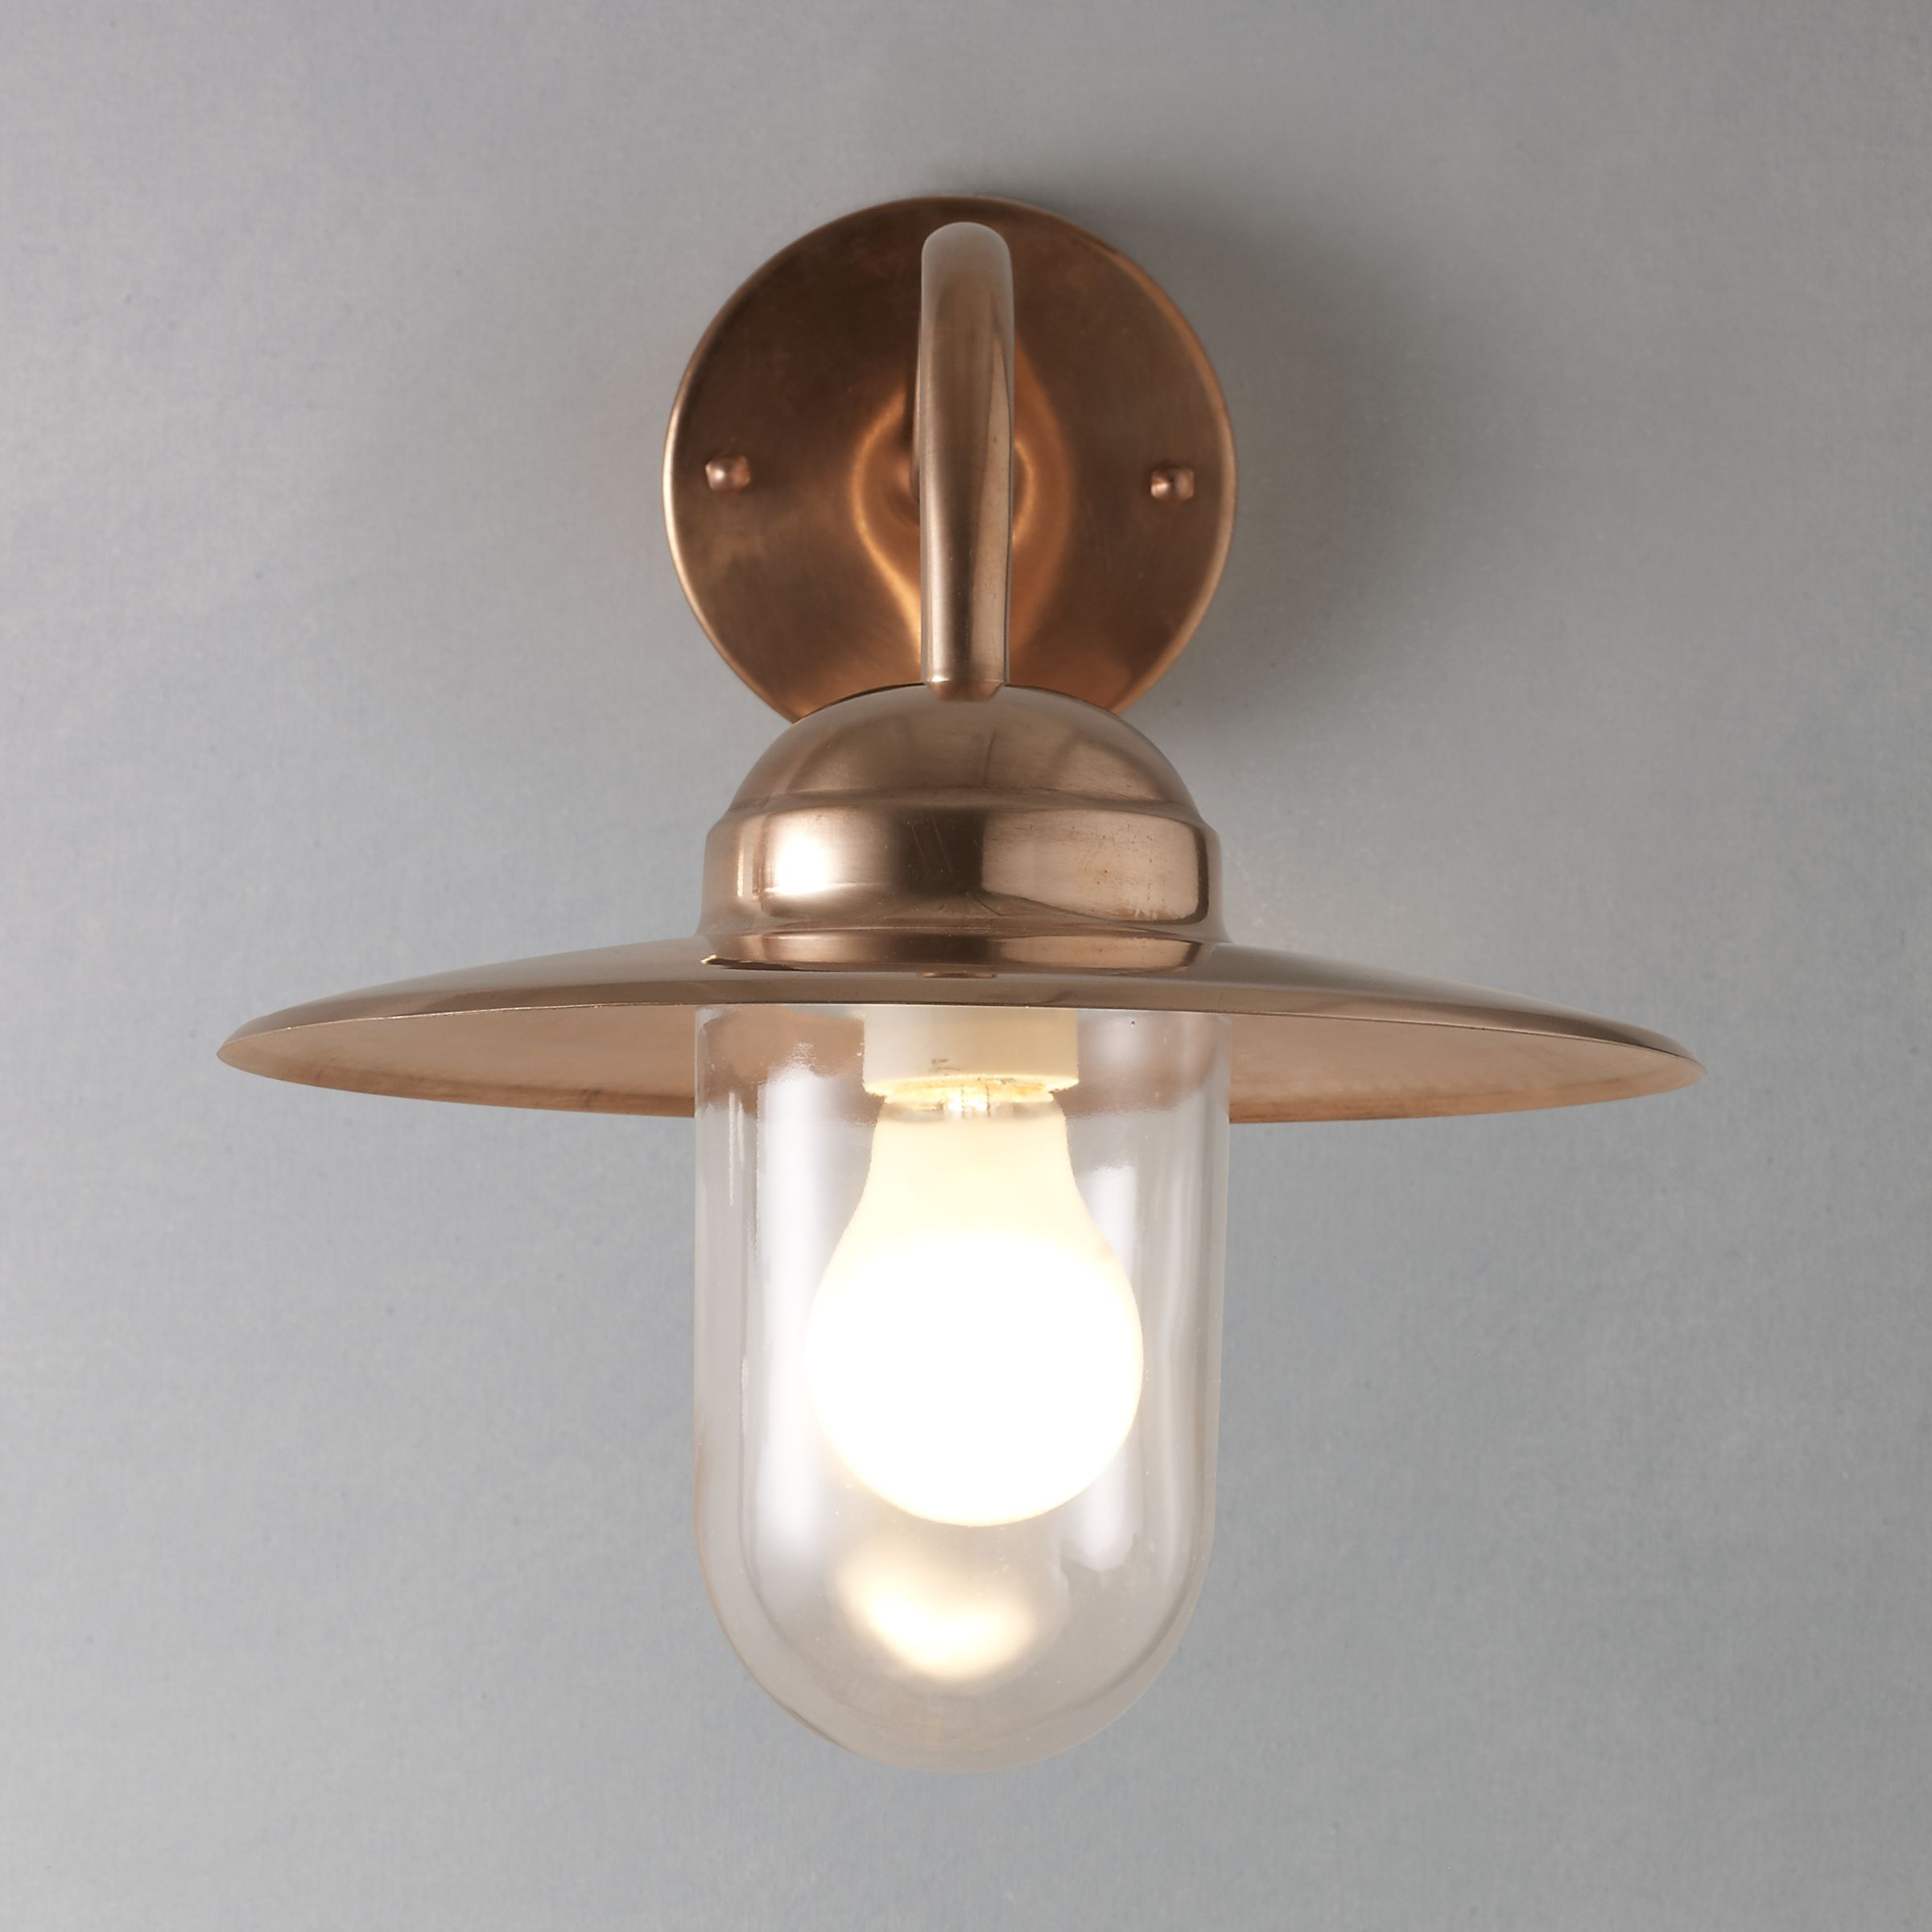 Nordlux Nordlux Luxembourg Outdoor Wall Light, Copper